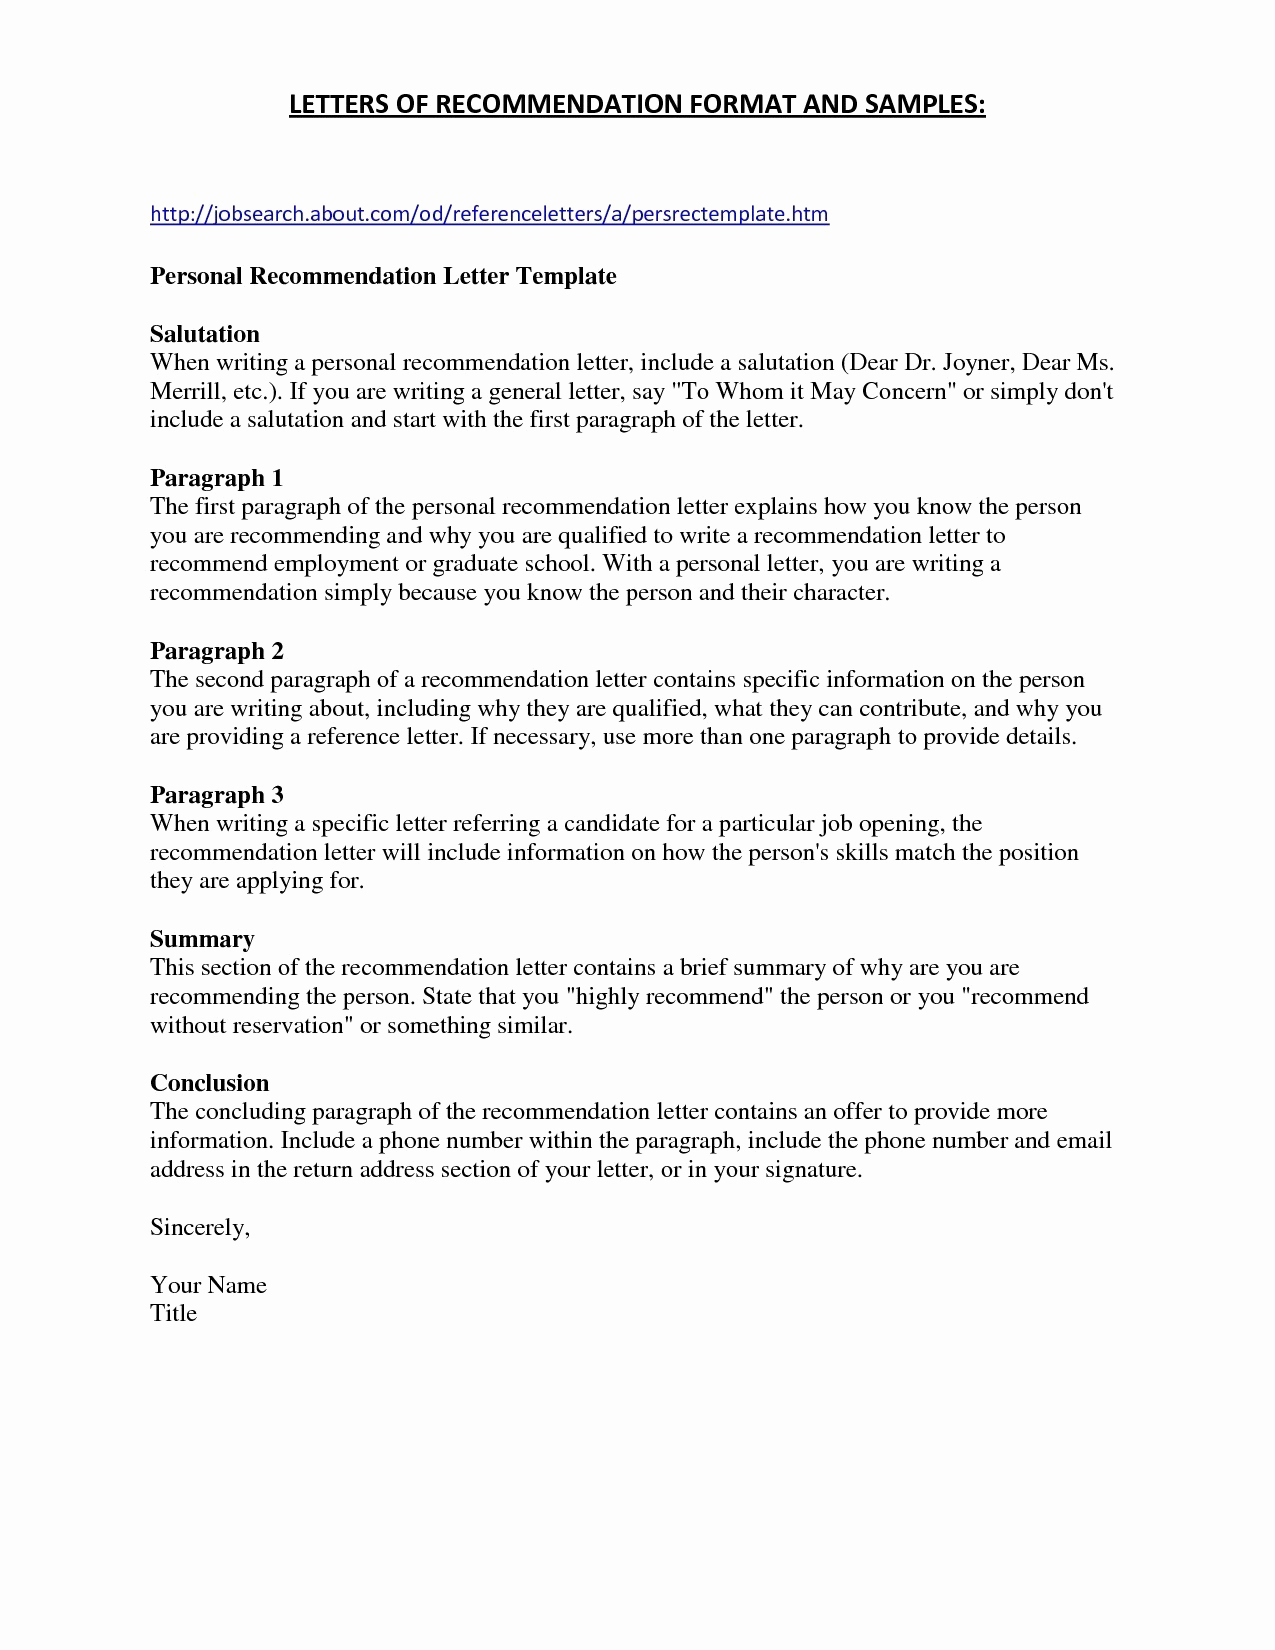 Personal Loan Payoff Letter Template - Mortgage Down Payment T Letter Template Beautiful top Result 50